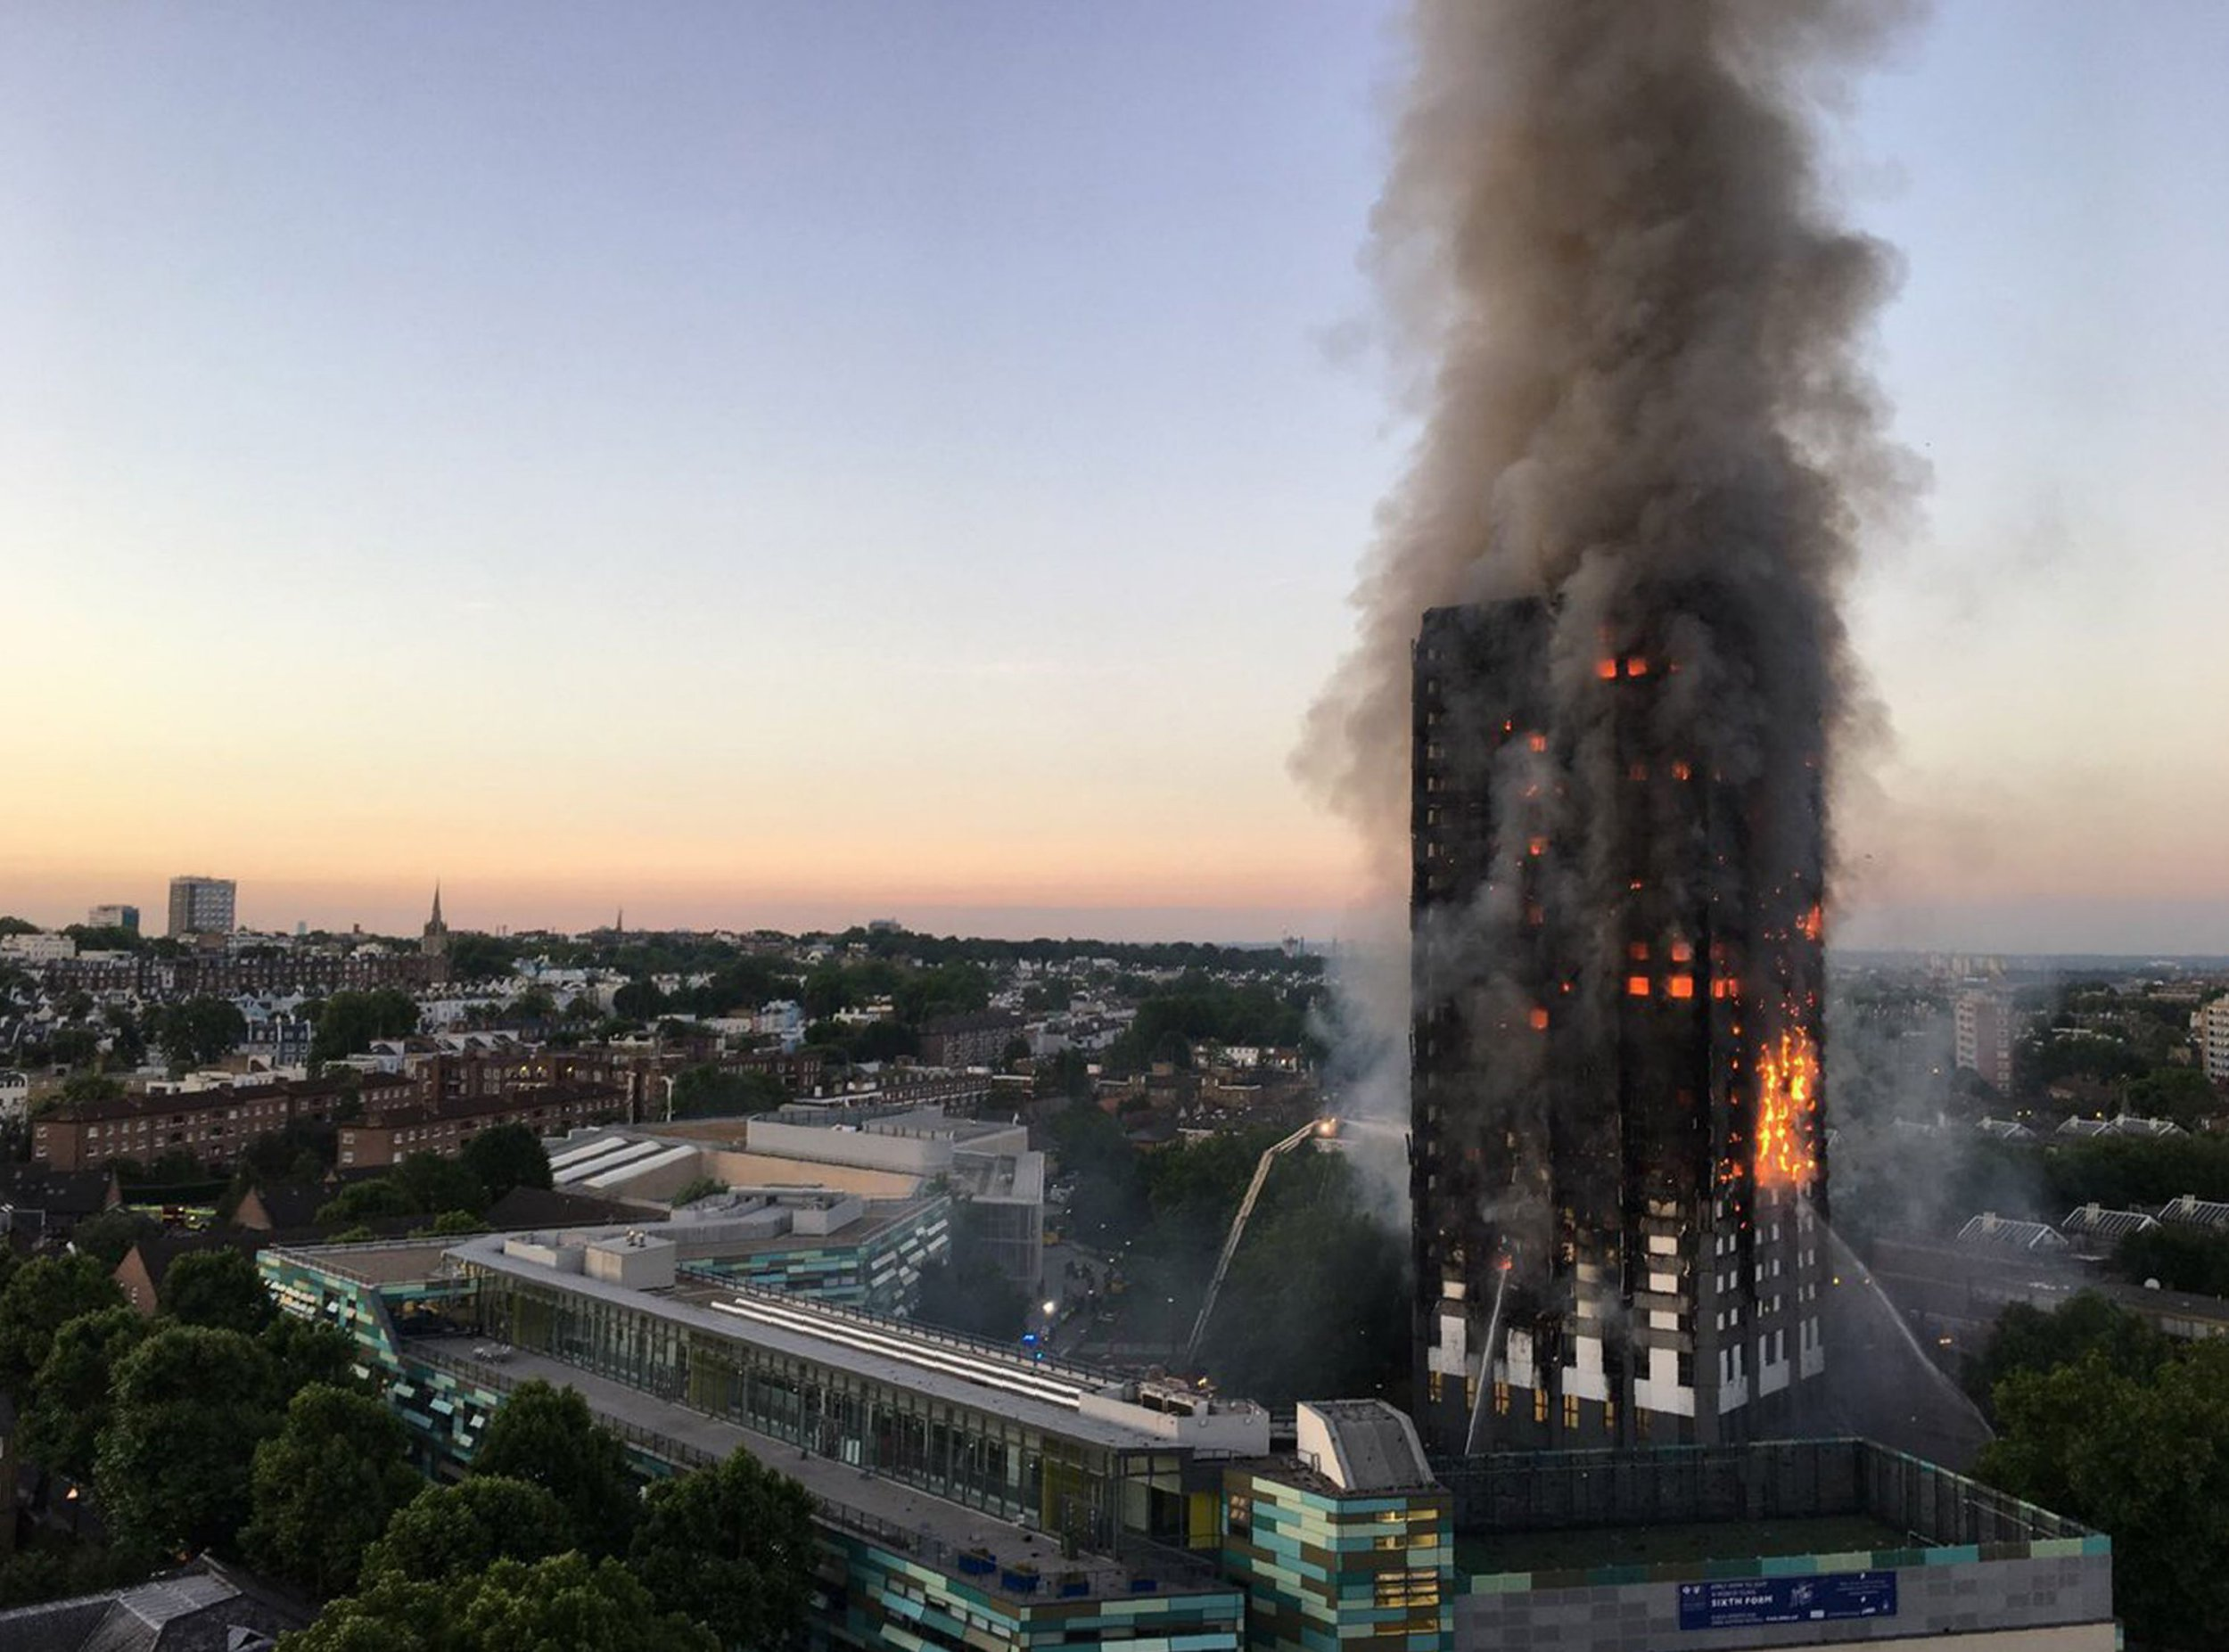 Most people who died in Grenfell Tower came from 23 flats